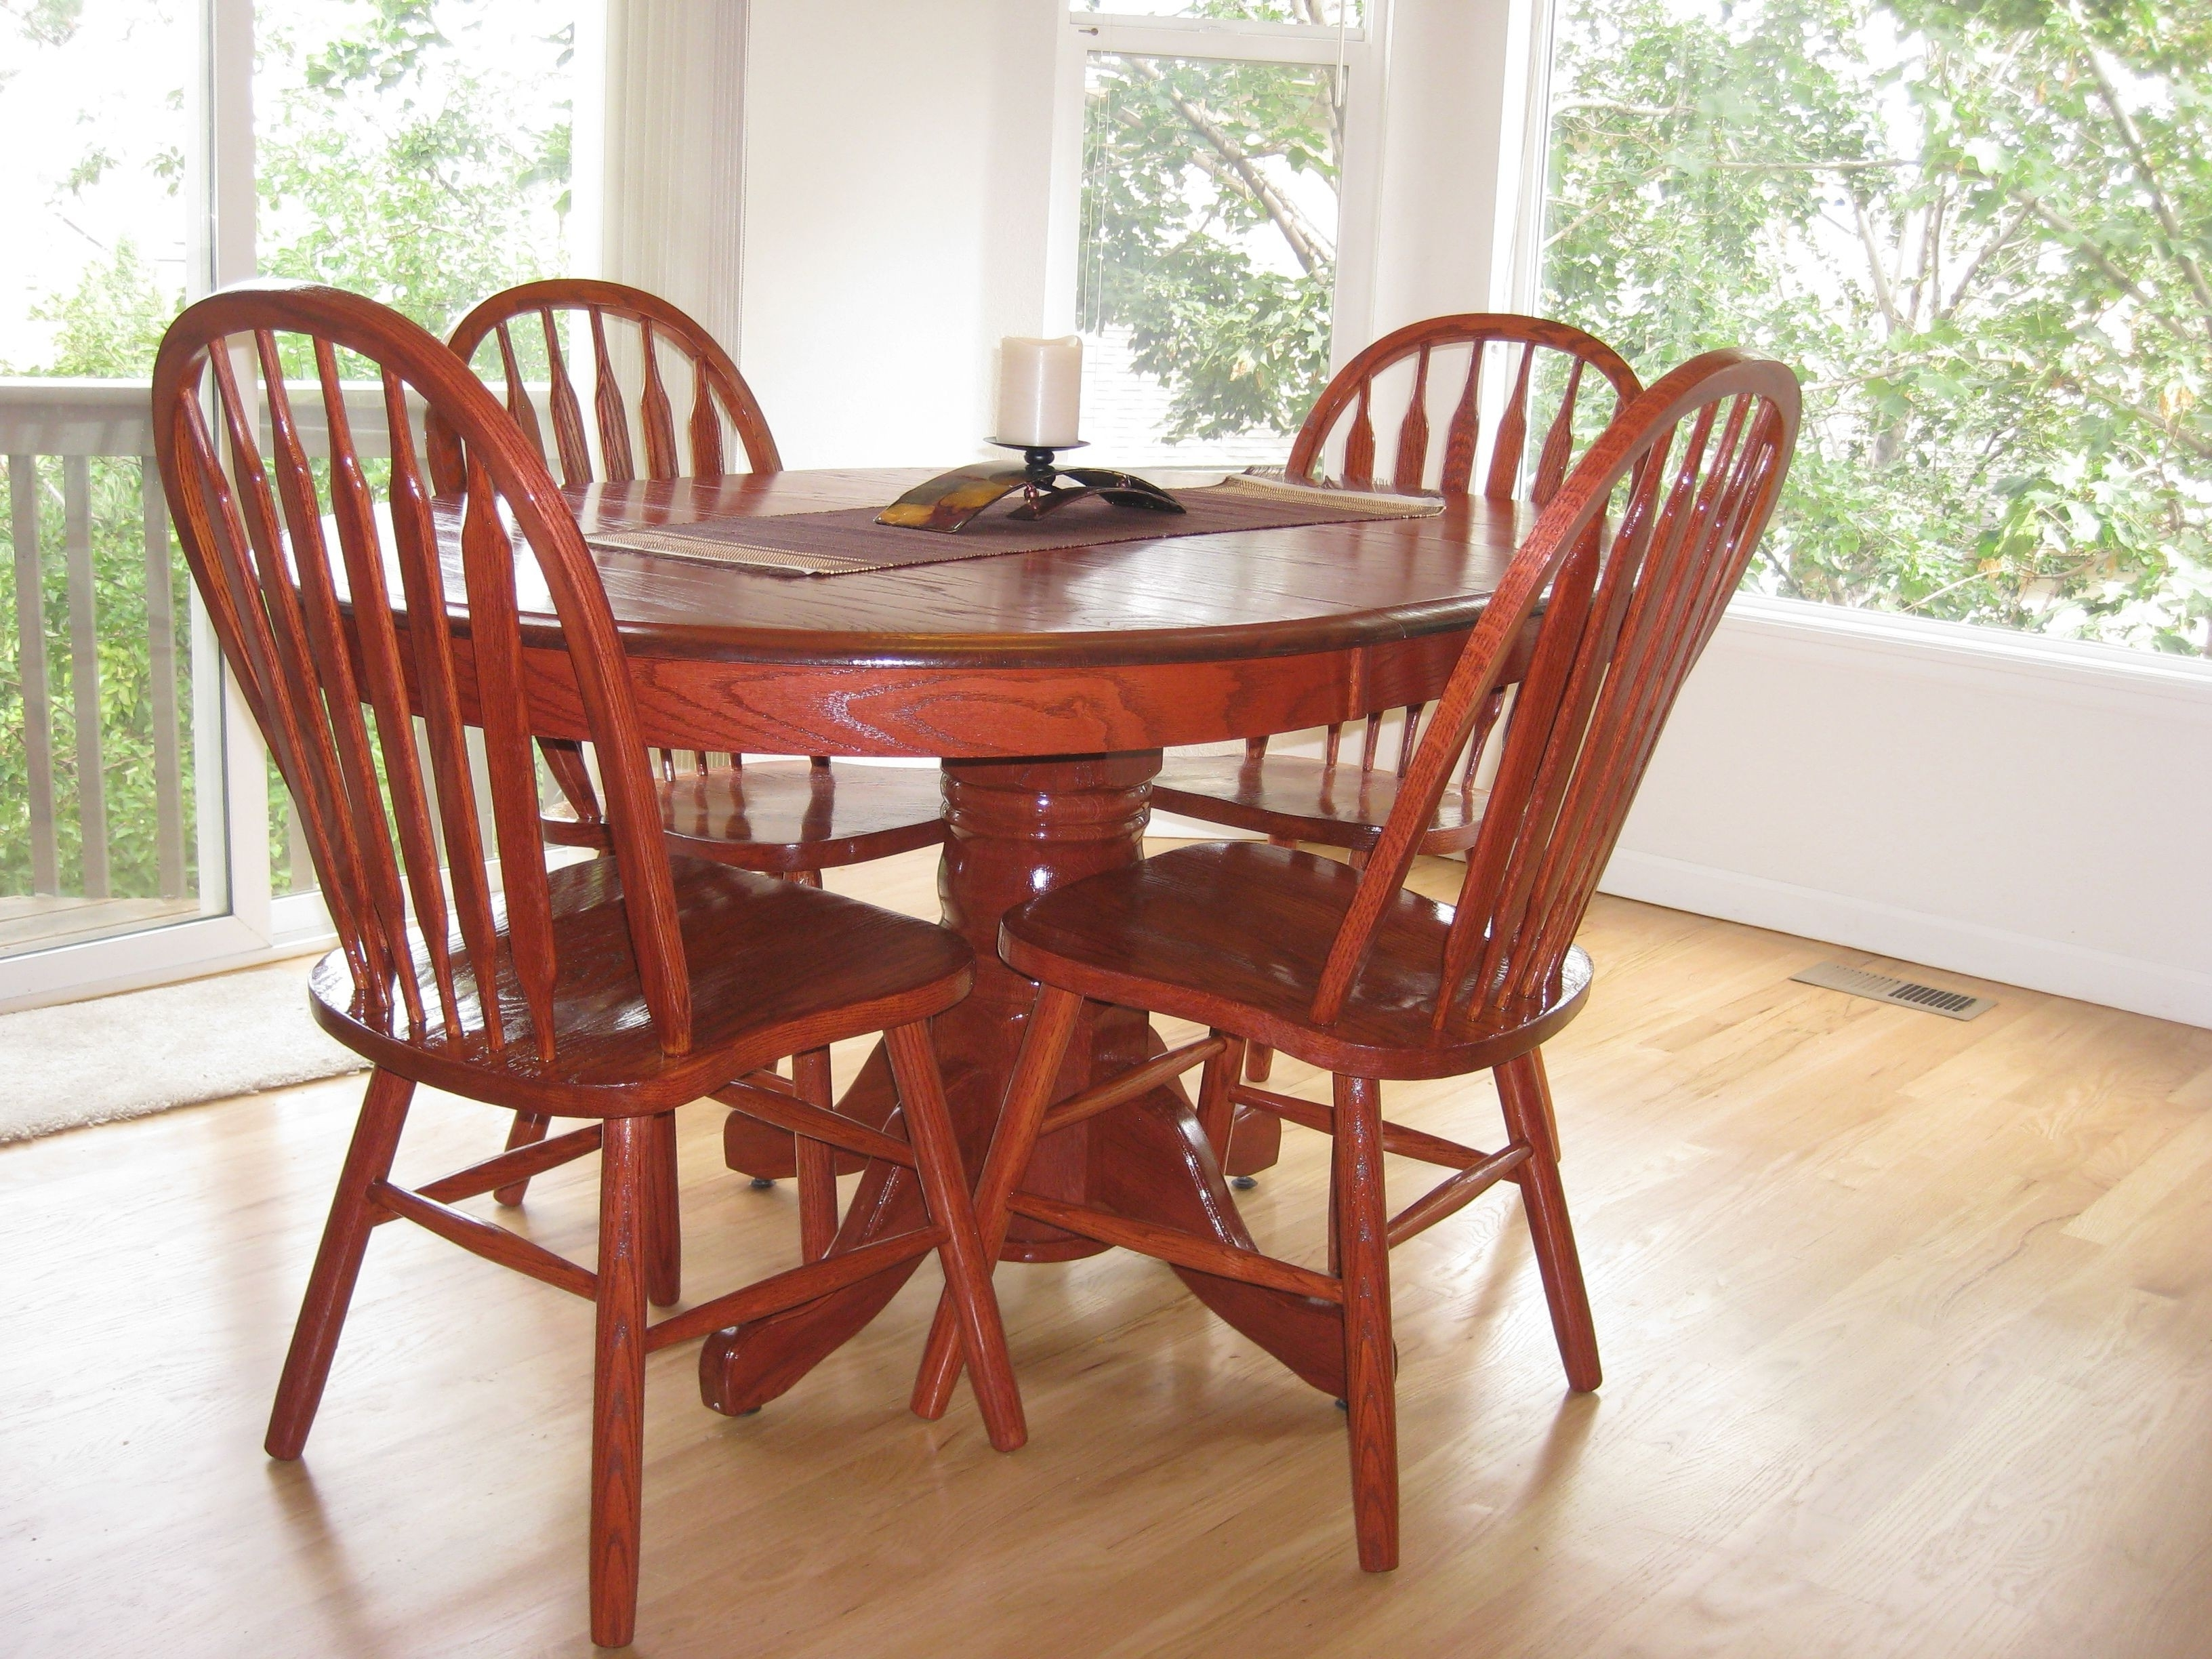 Most Popular Second Hand Oak Dining Chairs Regarding Used Dining Table And Chairs Sale Inspirational Used Dining Room (View 11 of 25)